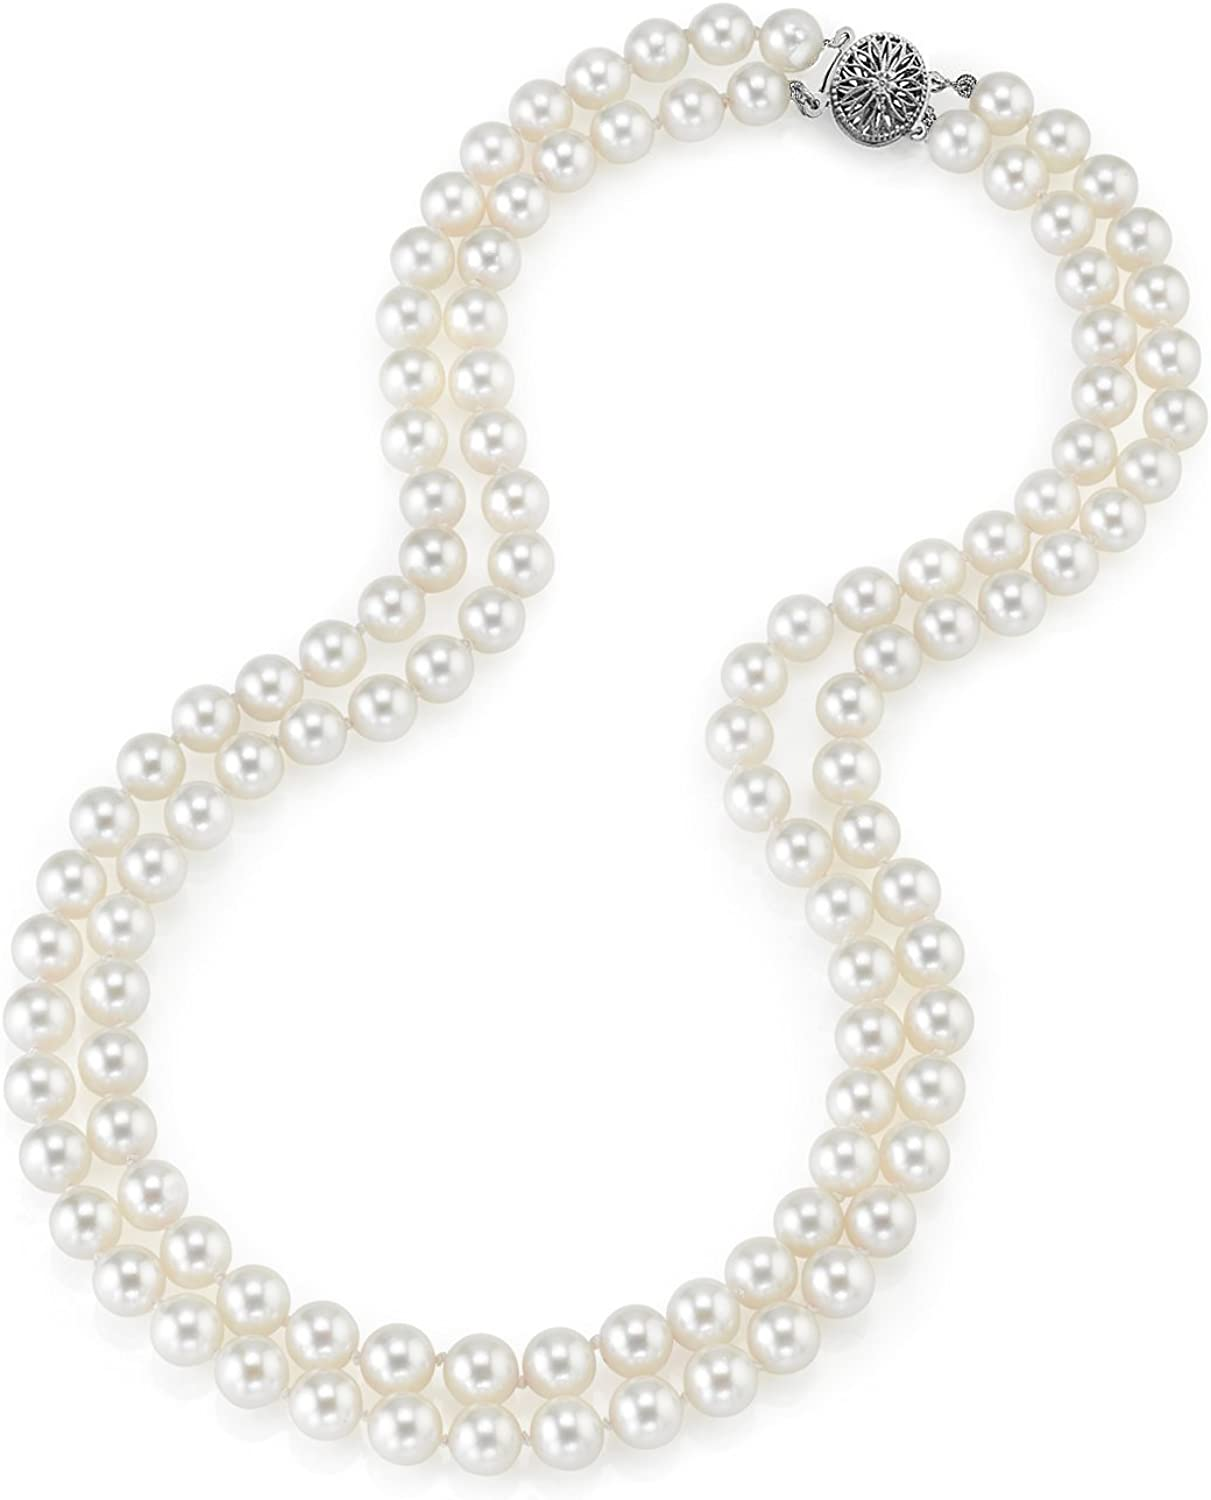 THE PEARL SOURCE 14K Gold Round Genuine White Double Japanese Akoya Saltwater Cultured Pearl Necklace in 16-17